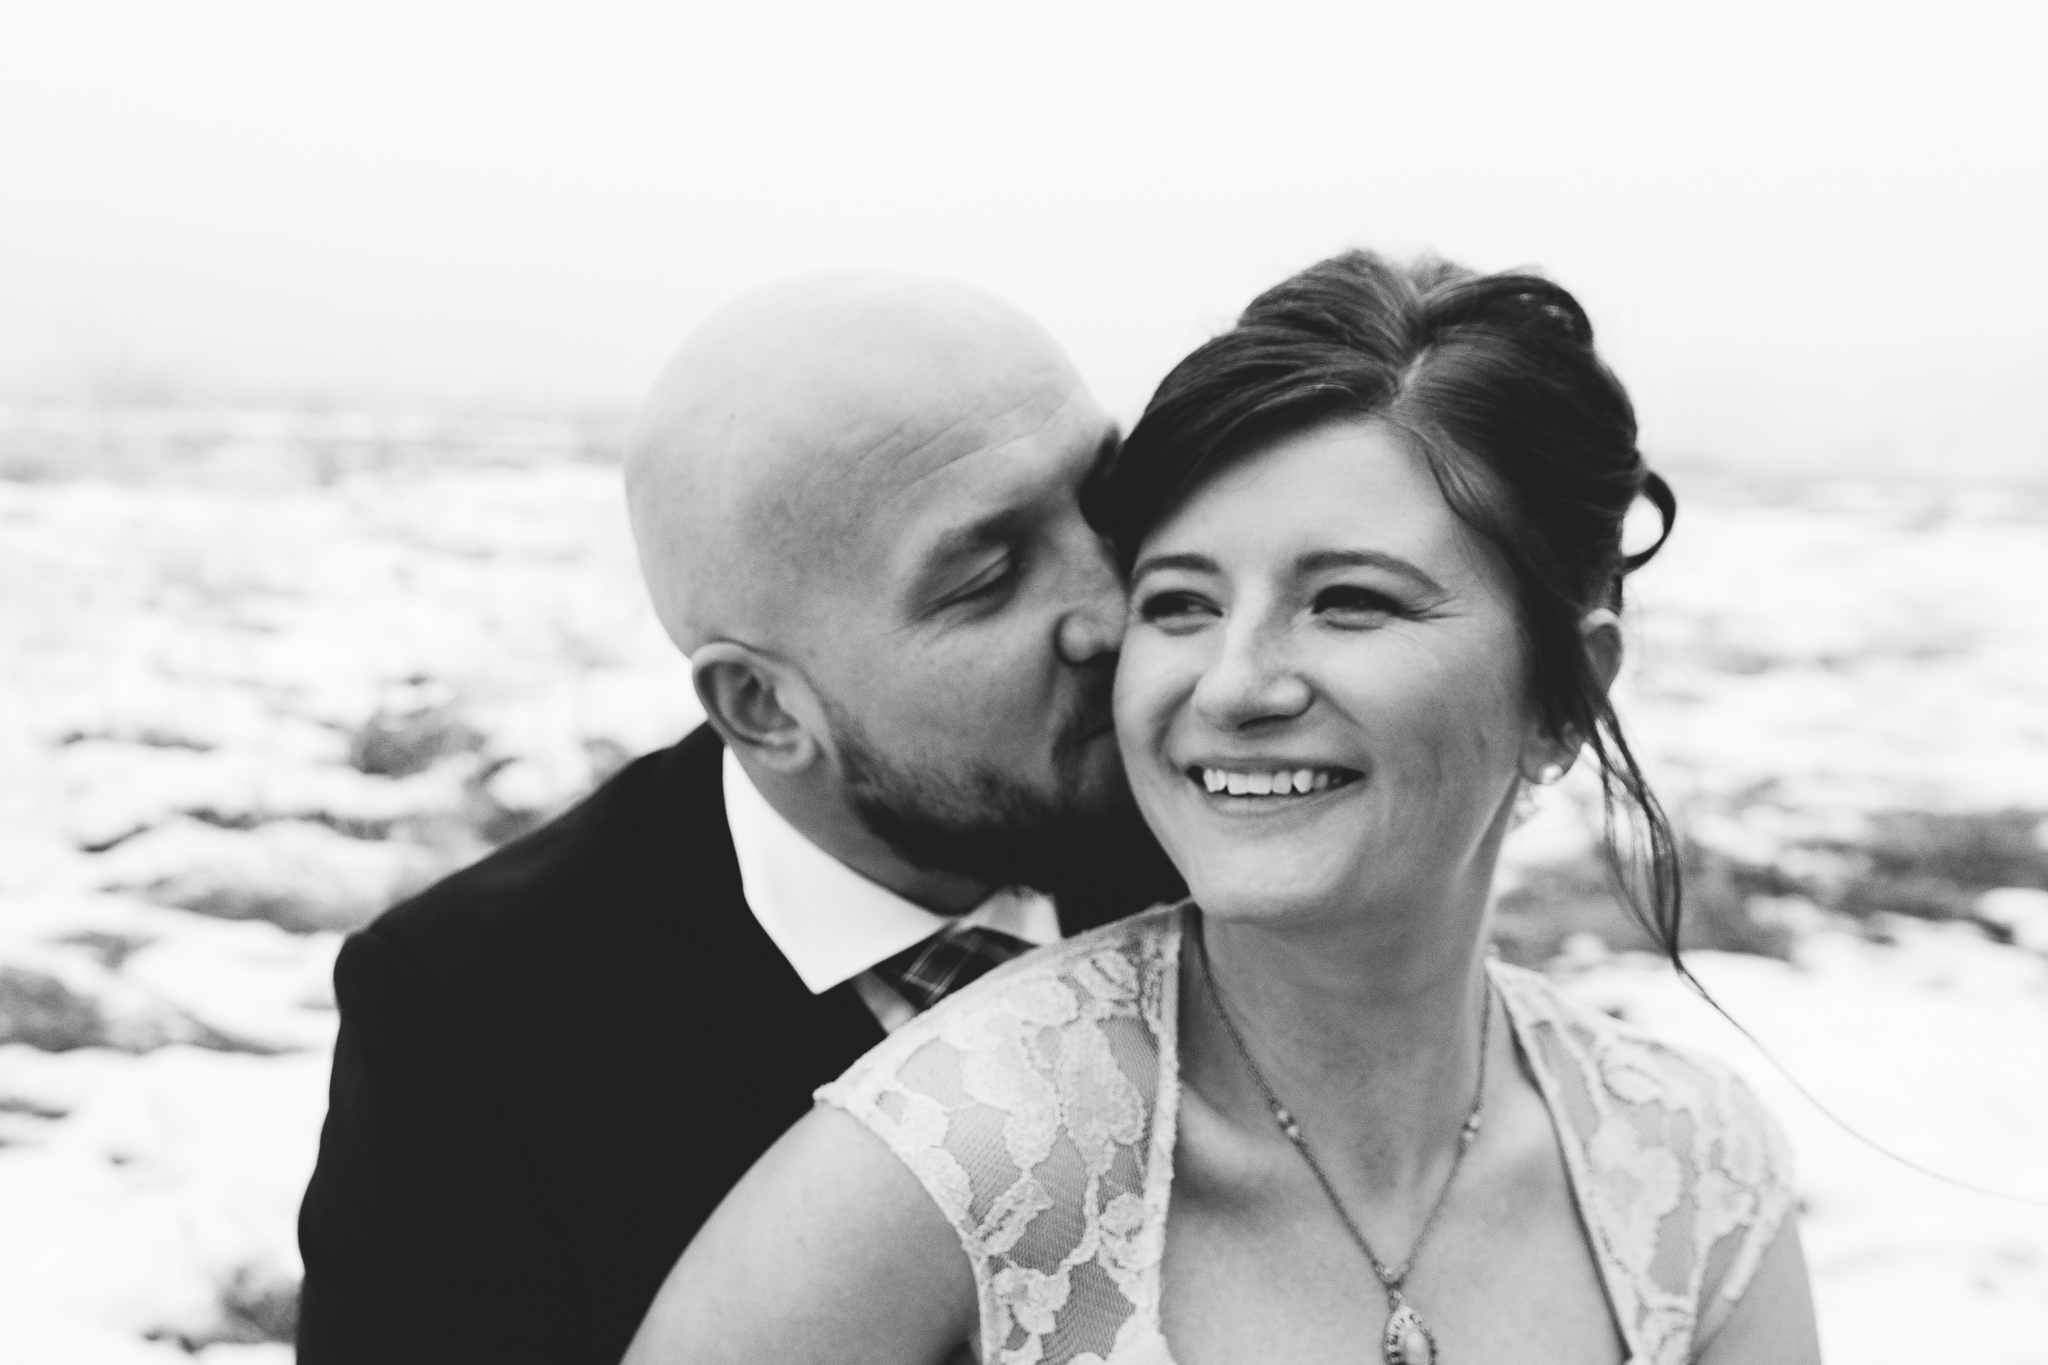 Black and white portrait of groom kissing bride on cheek at intimate winter wedding at Bow Valley Ranche